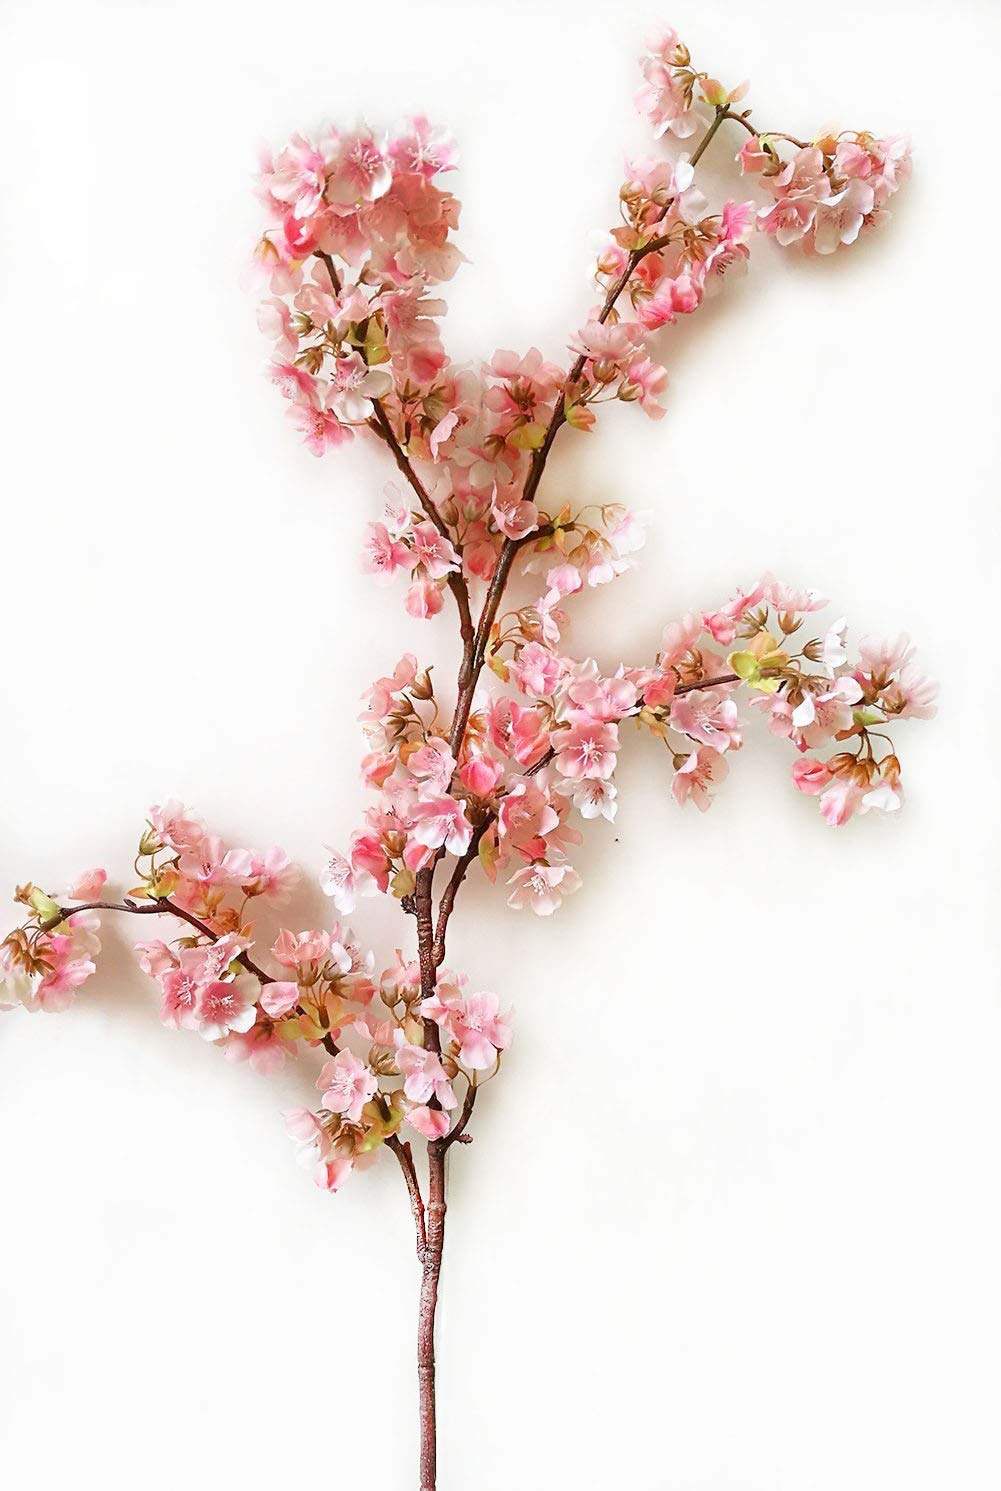 Buy 39 Inch Romantic Artificial Branches of Peach Cherry Blossom Silk  Flowers Home Wedding Decoration Flower (Pink) by U&M2 Online at Low Prices  in India - Amazon.in